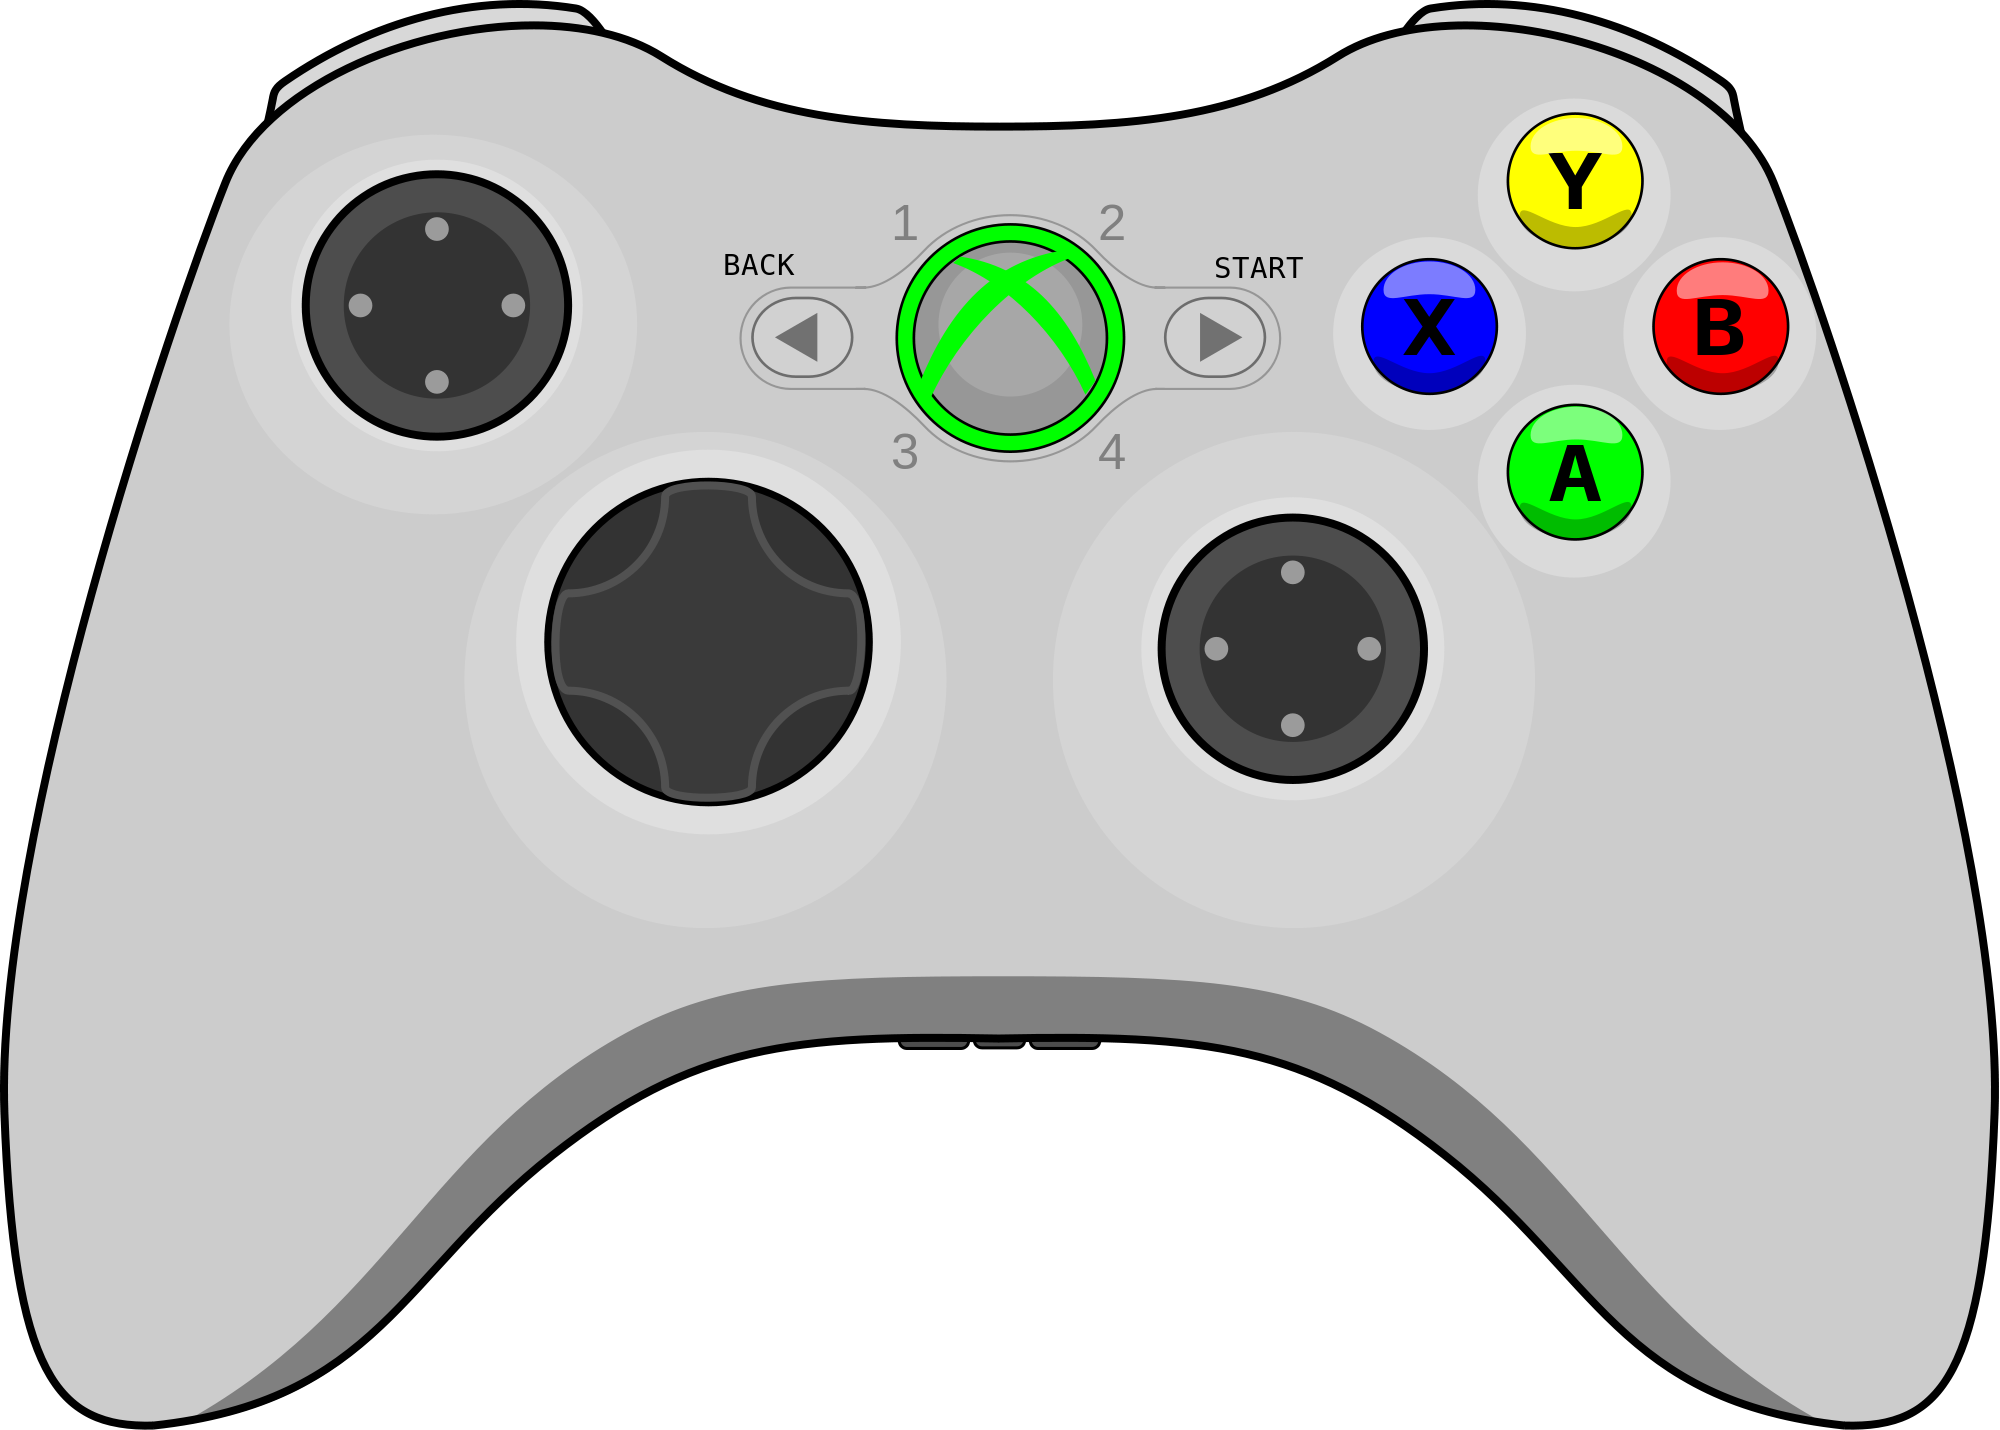 Xbox 360 Controller Drawing at GetDrawings.com | Free for personal ...